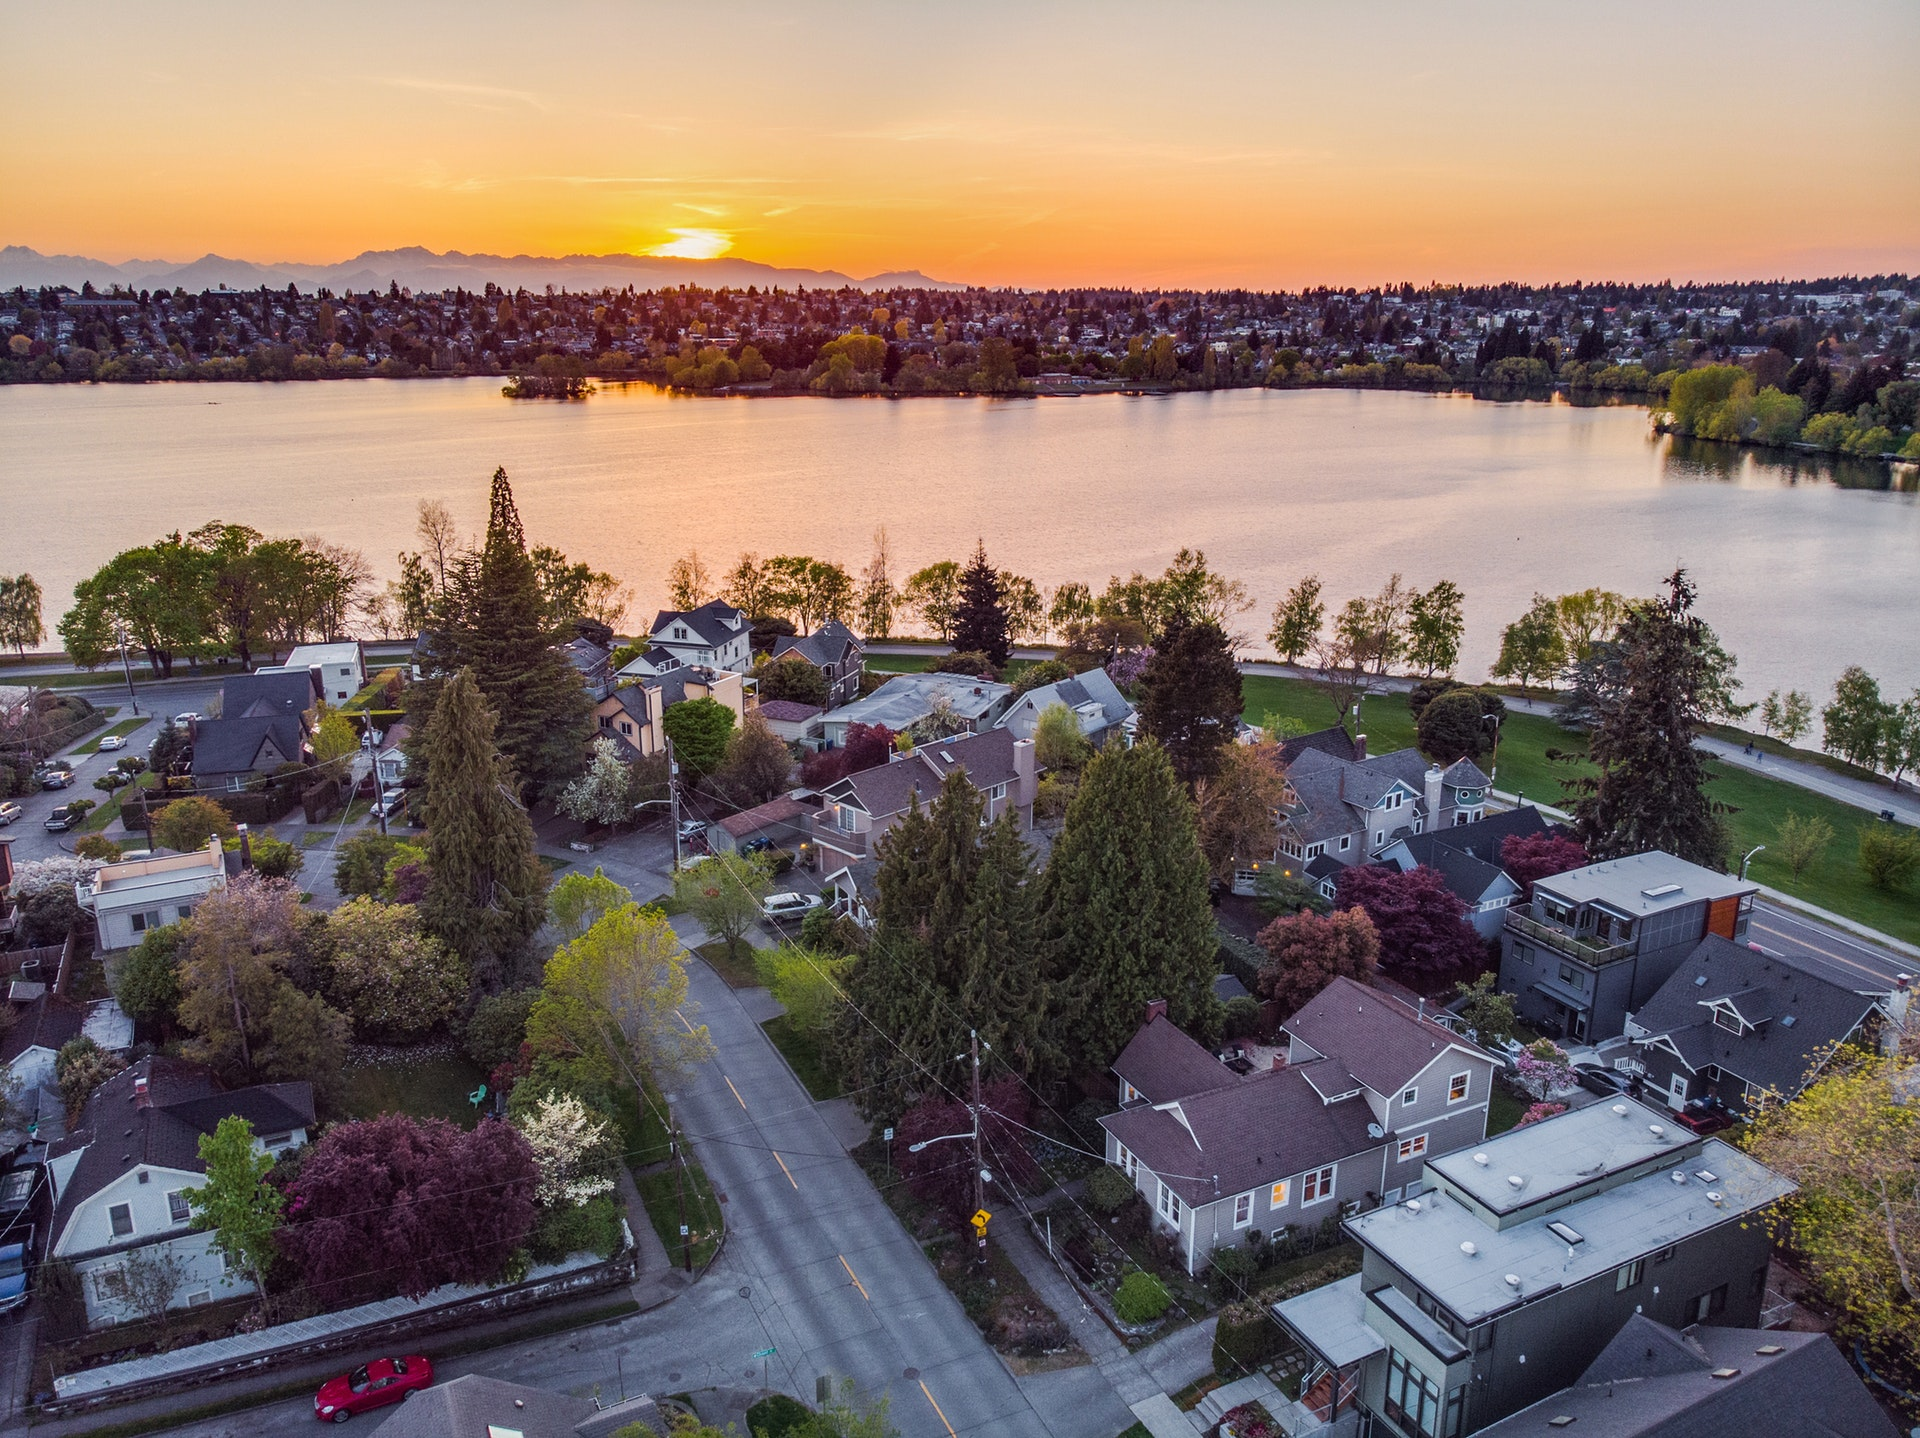 By the Numbers - At $2.2 million, the average residential waterfront selling price in North Seattle was more than double the median price of $1.04 million, skewed by four Laurelhurst homes that sold for $4.6 million to $11 million.